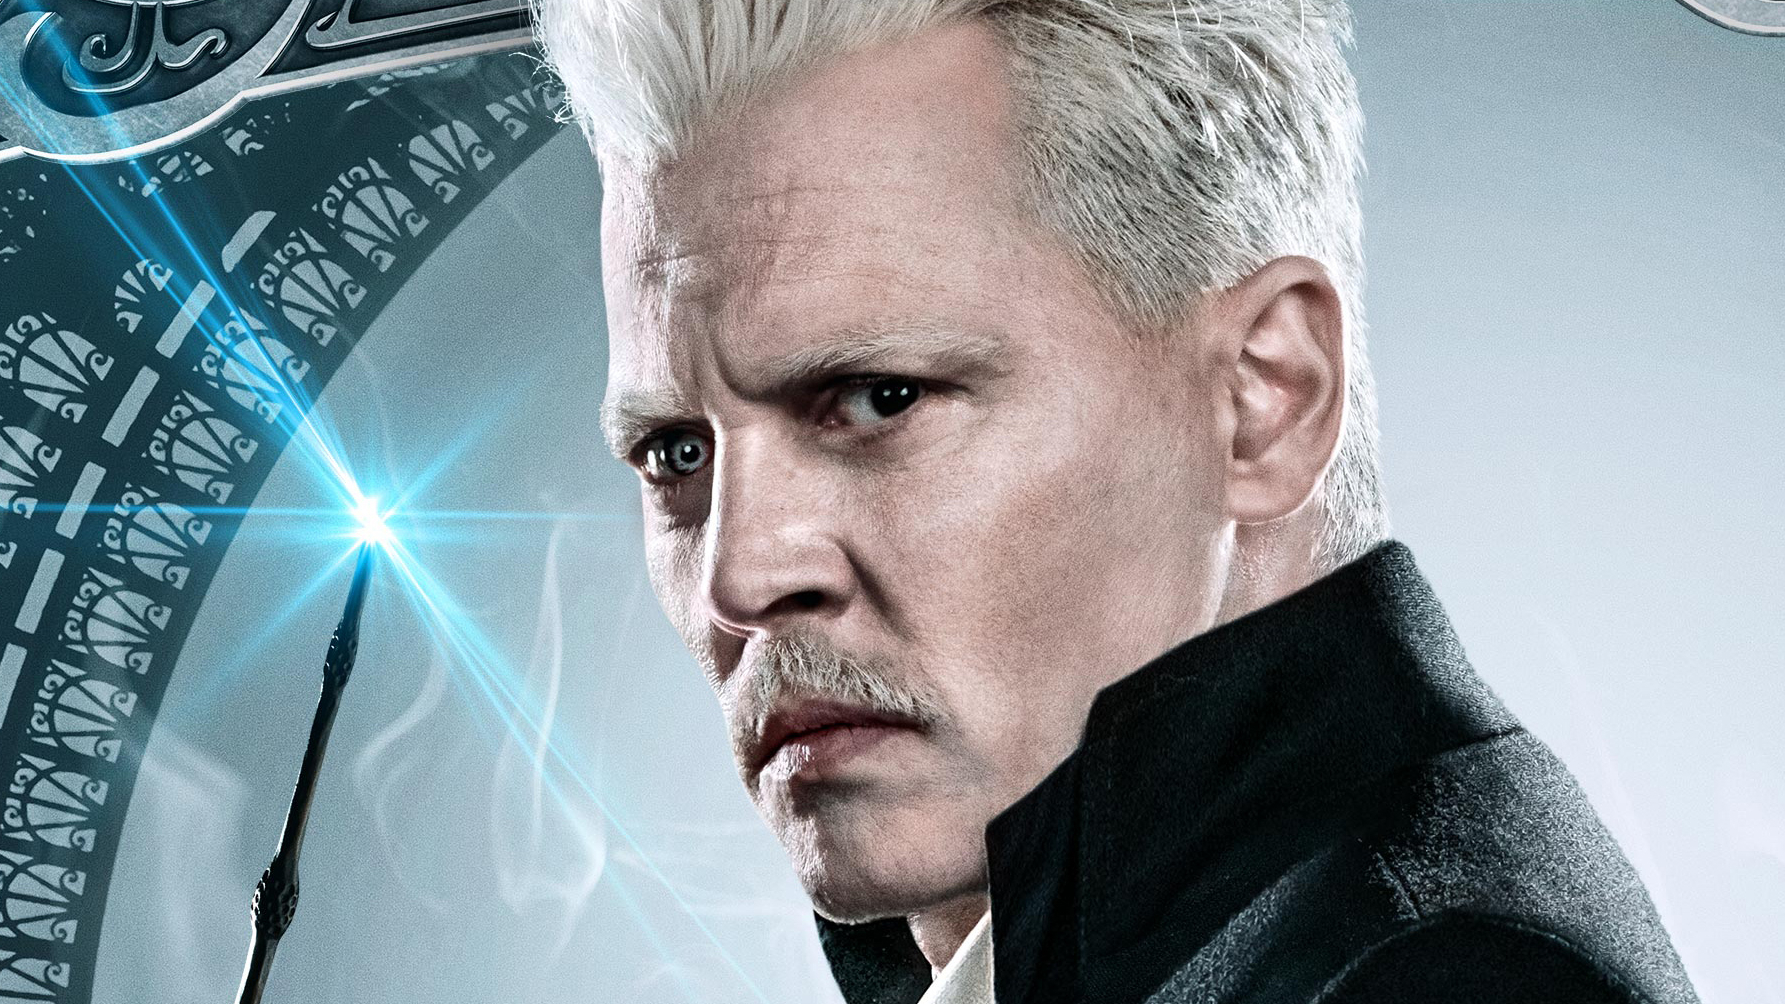 Johnny Depp May Be Dropped From Fantastic Beasts After His Loss In Court